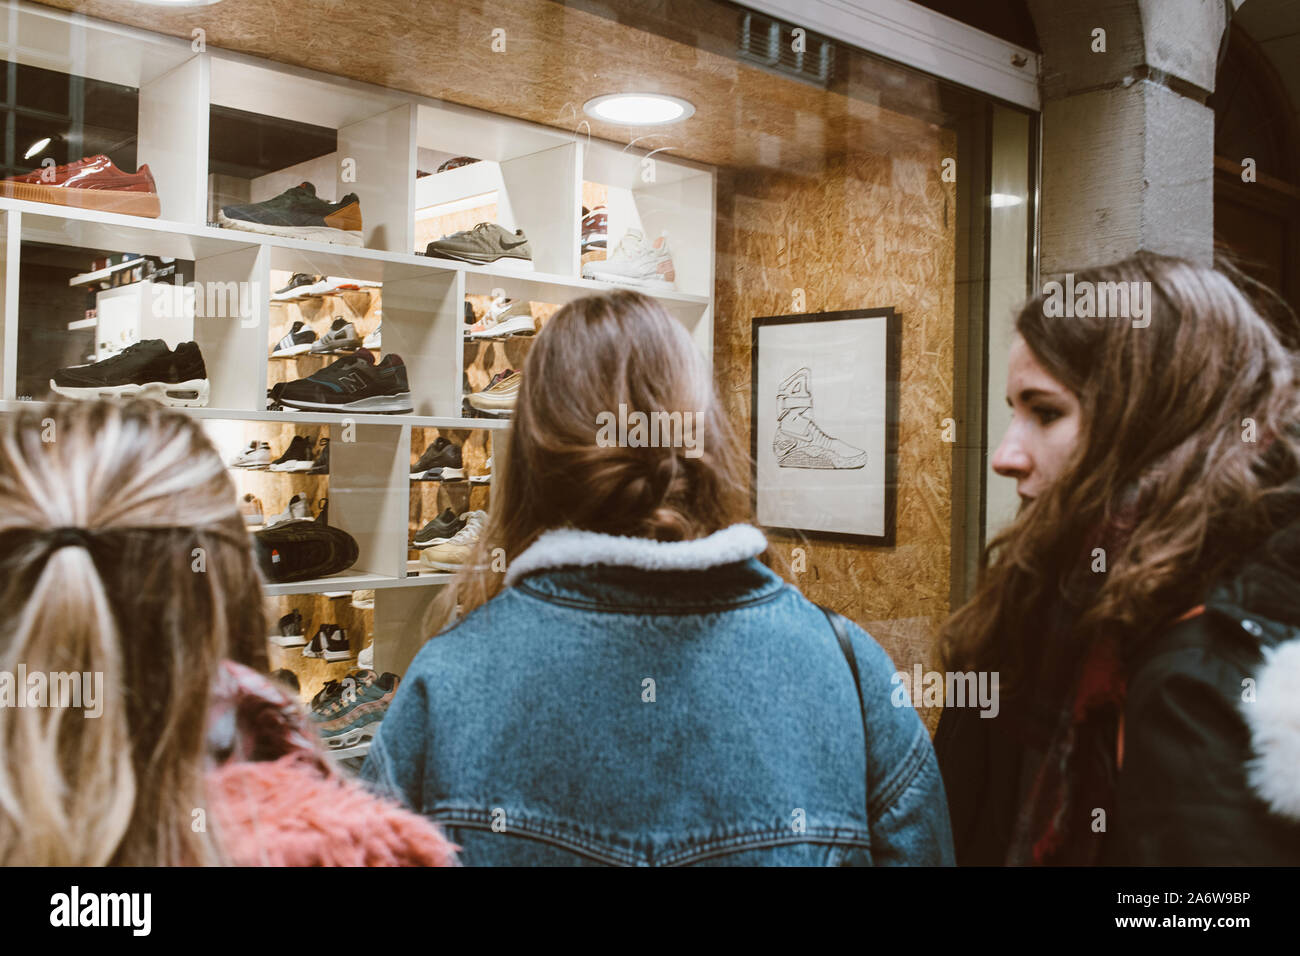 New Balance Store High Resolution Stock Photography and Images - Alamy